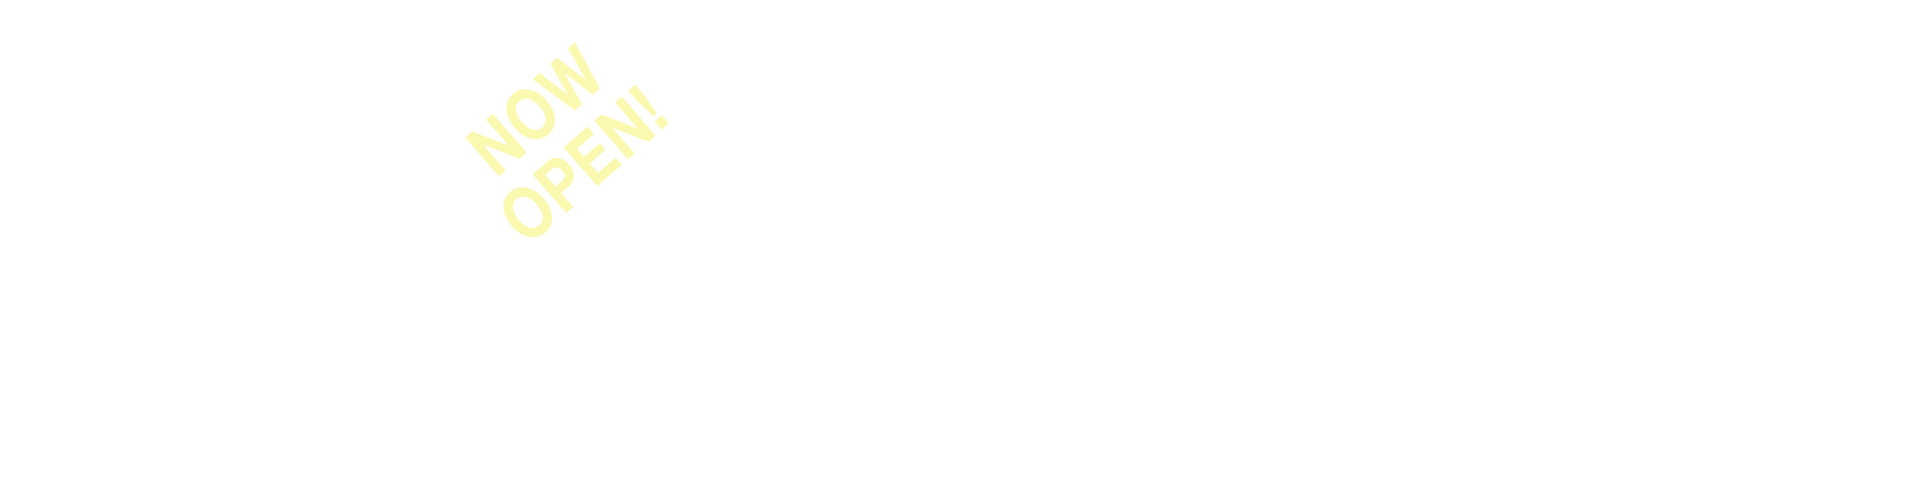 Norman Rockwell Museum - The Home for American Illustration